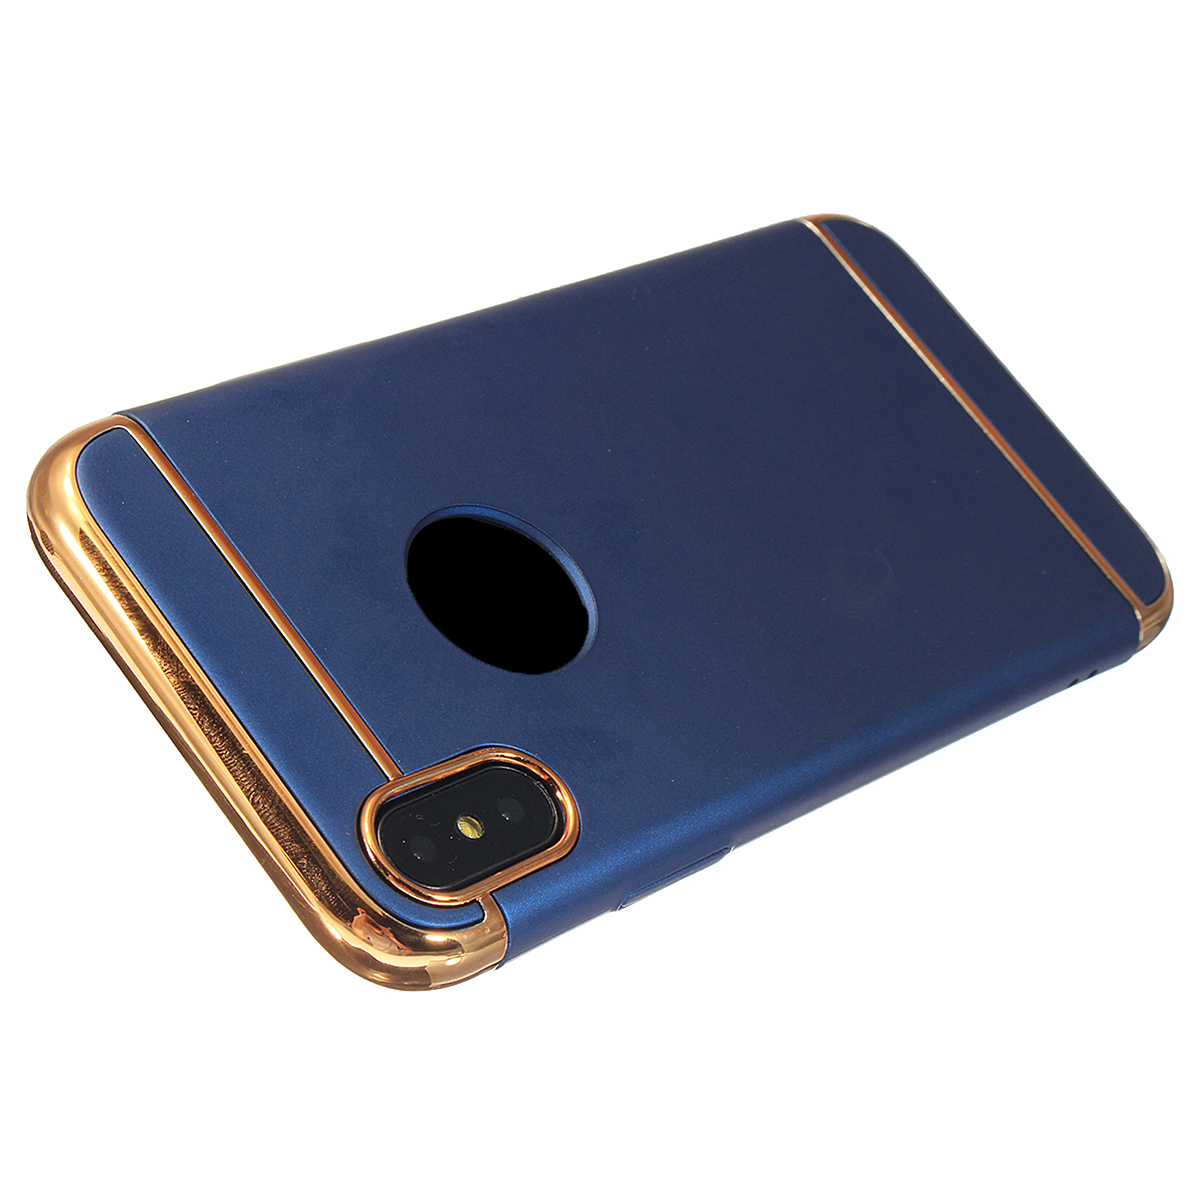 3 In 1 Plating Anti Fingerprint Acrylic PC Case Cover for iPhone X